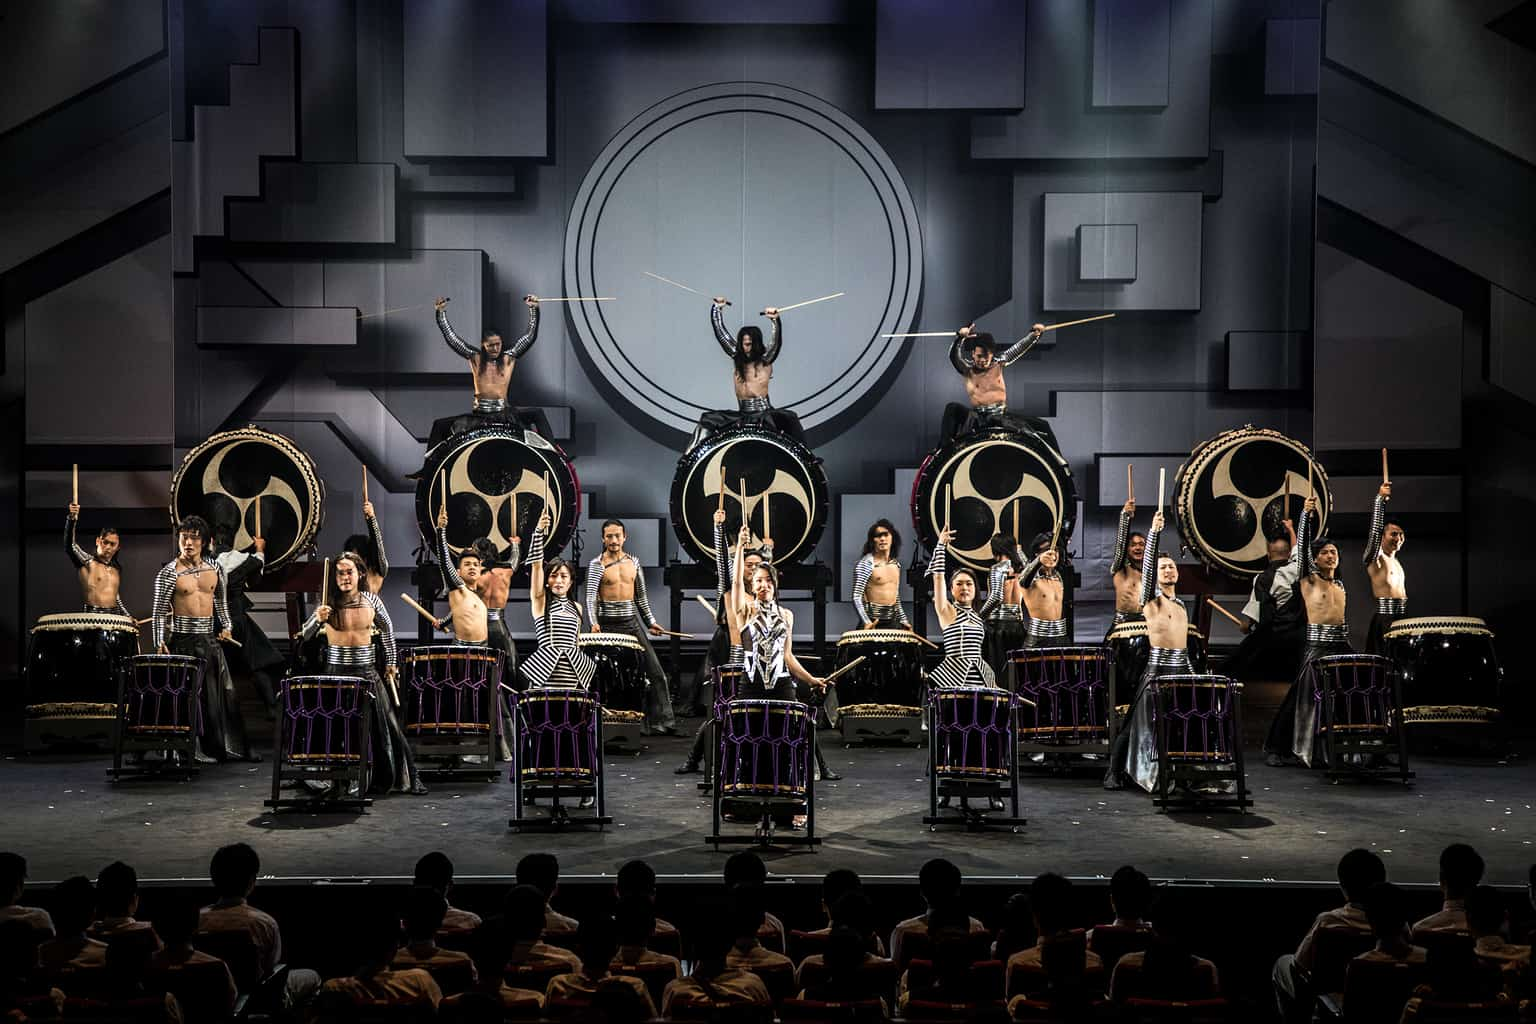 DRUM TAO is known for combining music and dance to reflect Japanese tradition while incorporating other Asian cultural influences.  Breaking past the traditional notions of taiko, DRUM TAO continues to create an entirely new art form that is modern yet retains sense of tradition.